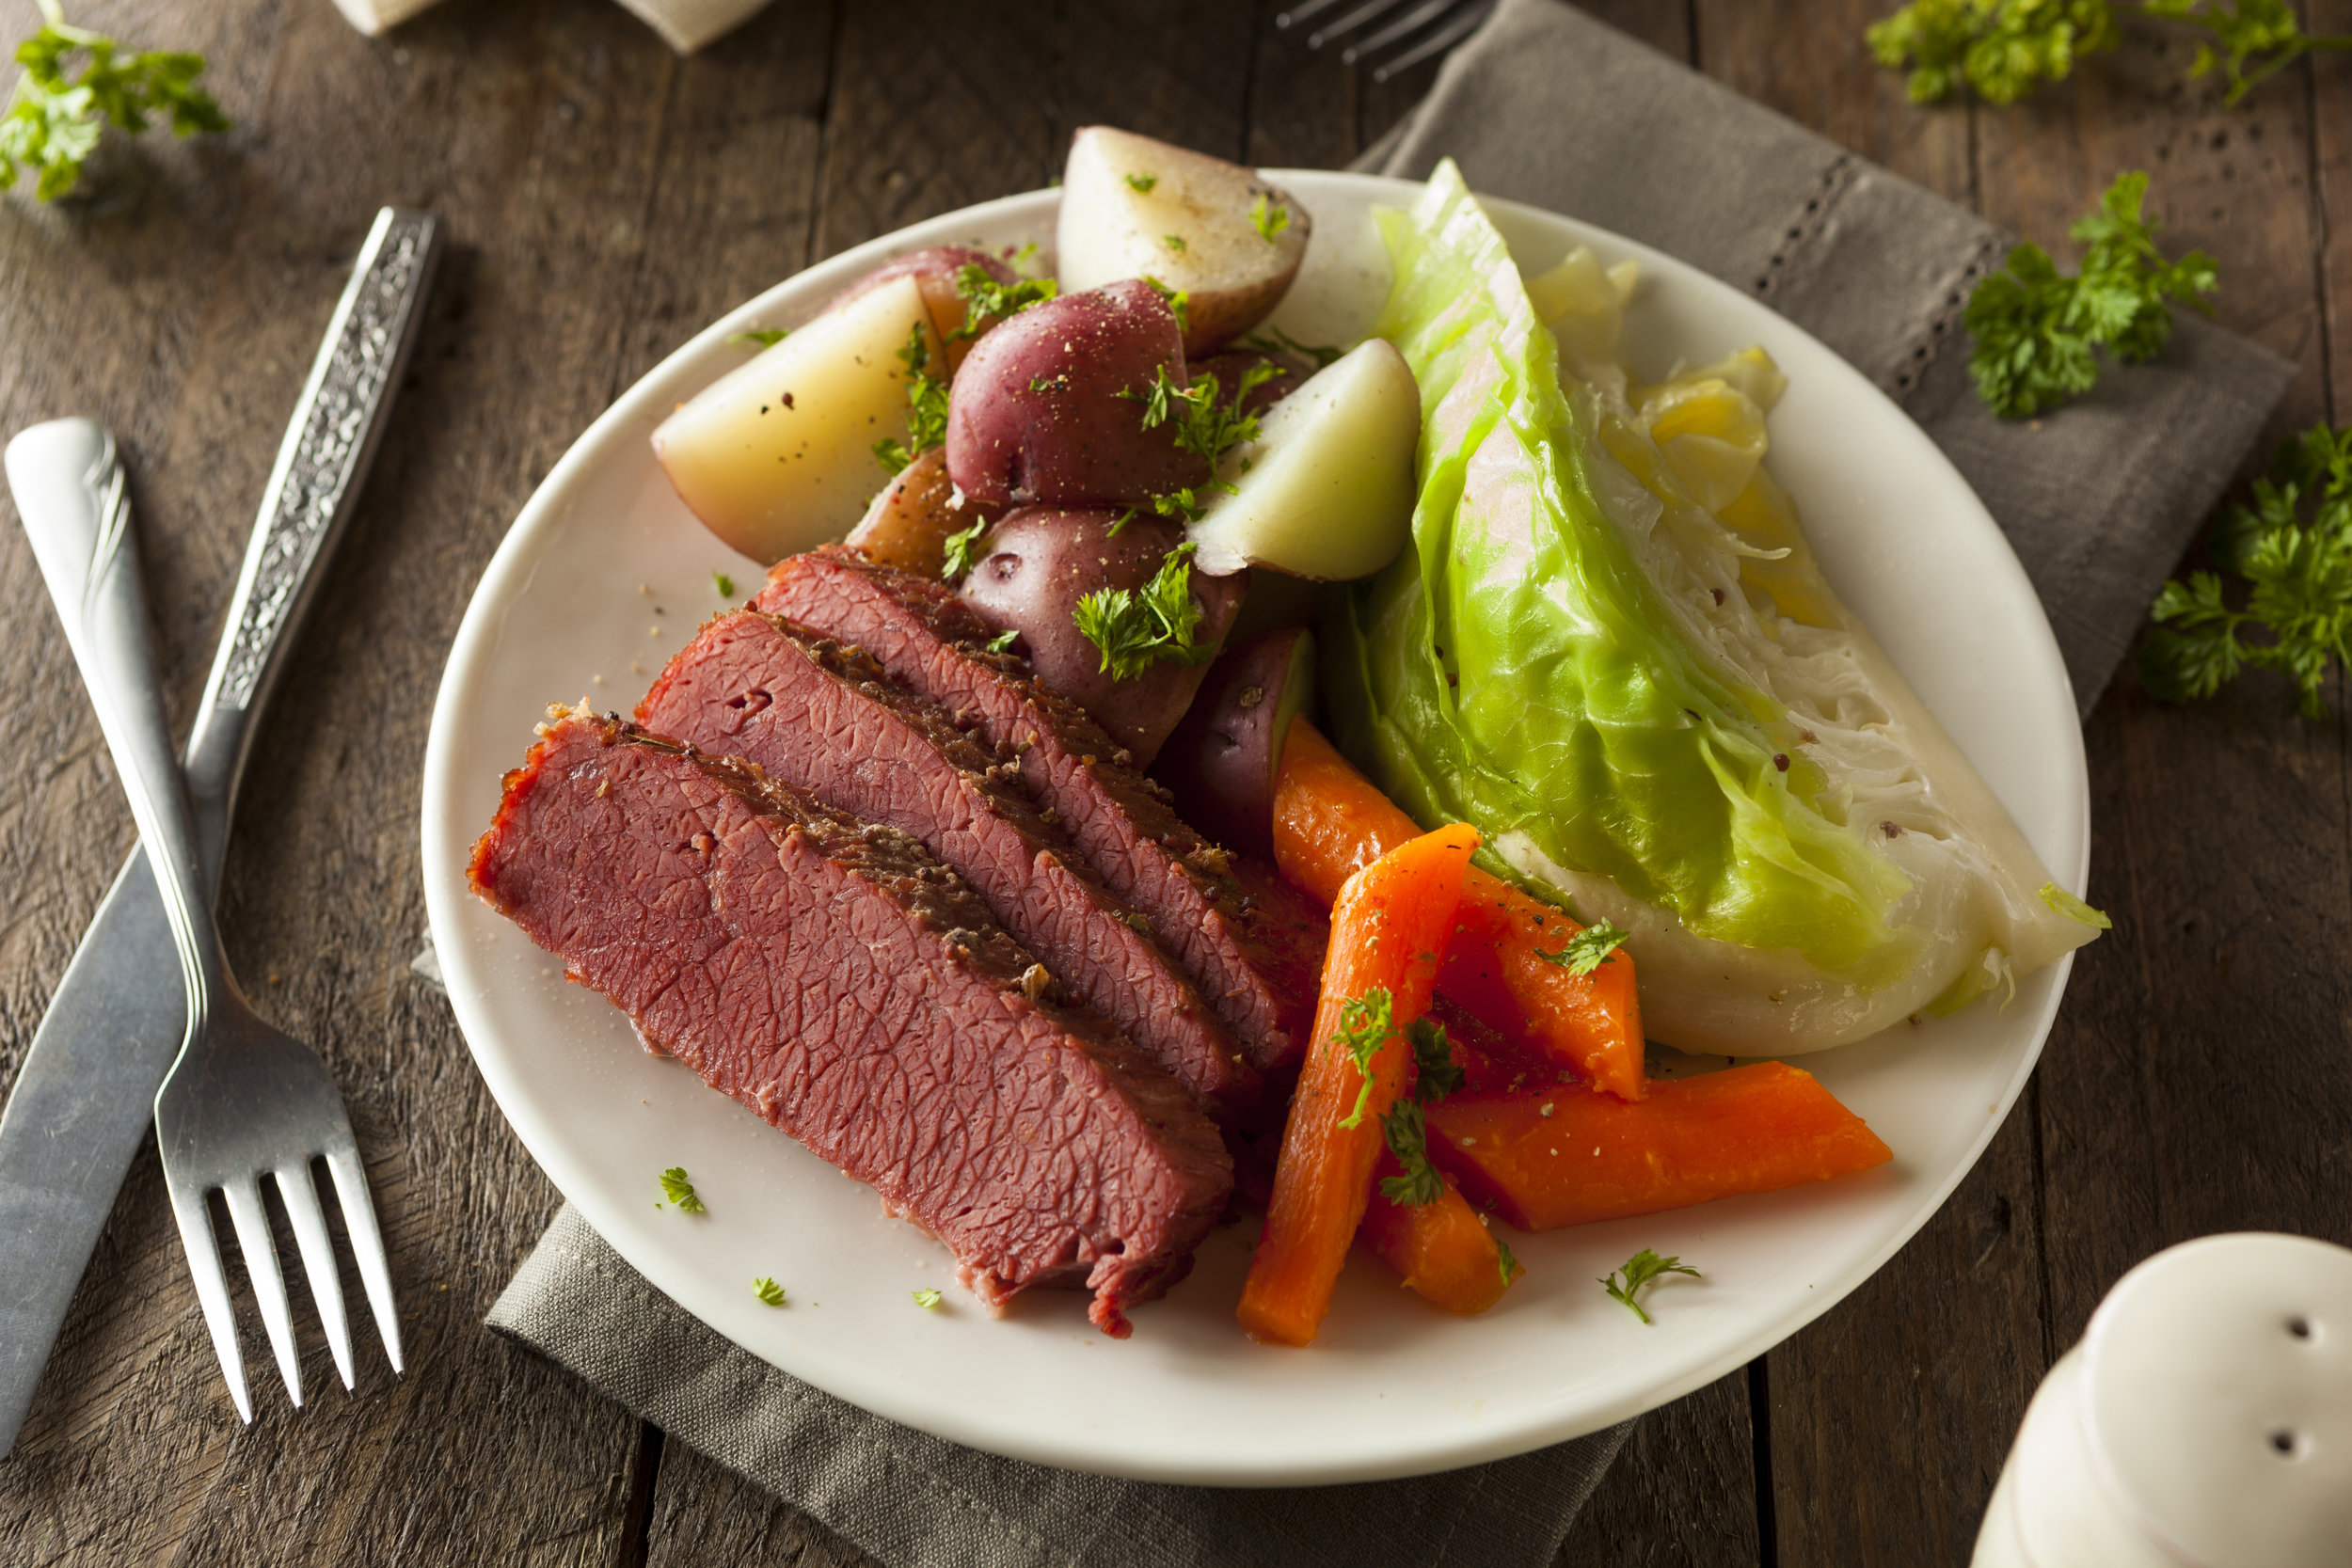 St. Patrick's Day specials at pescadeli - Take home our house made corned beef bistro or grab and go meals, or pick up a raw corned beef at Butchers Alley.